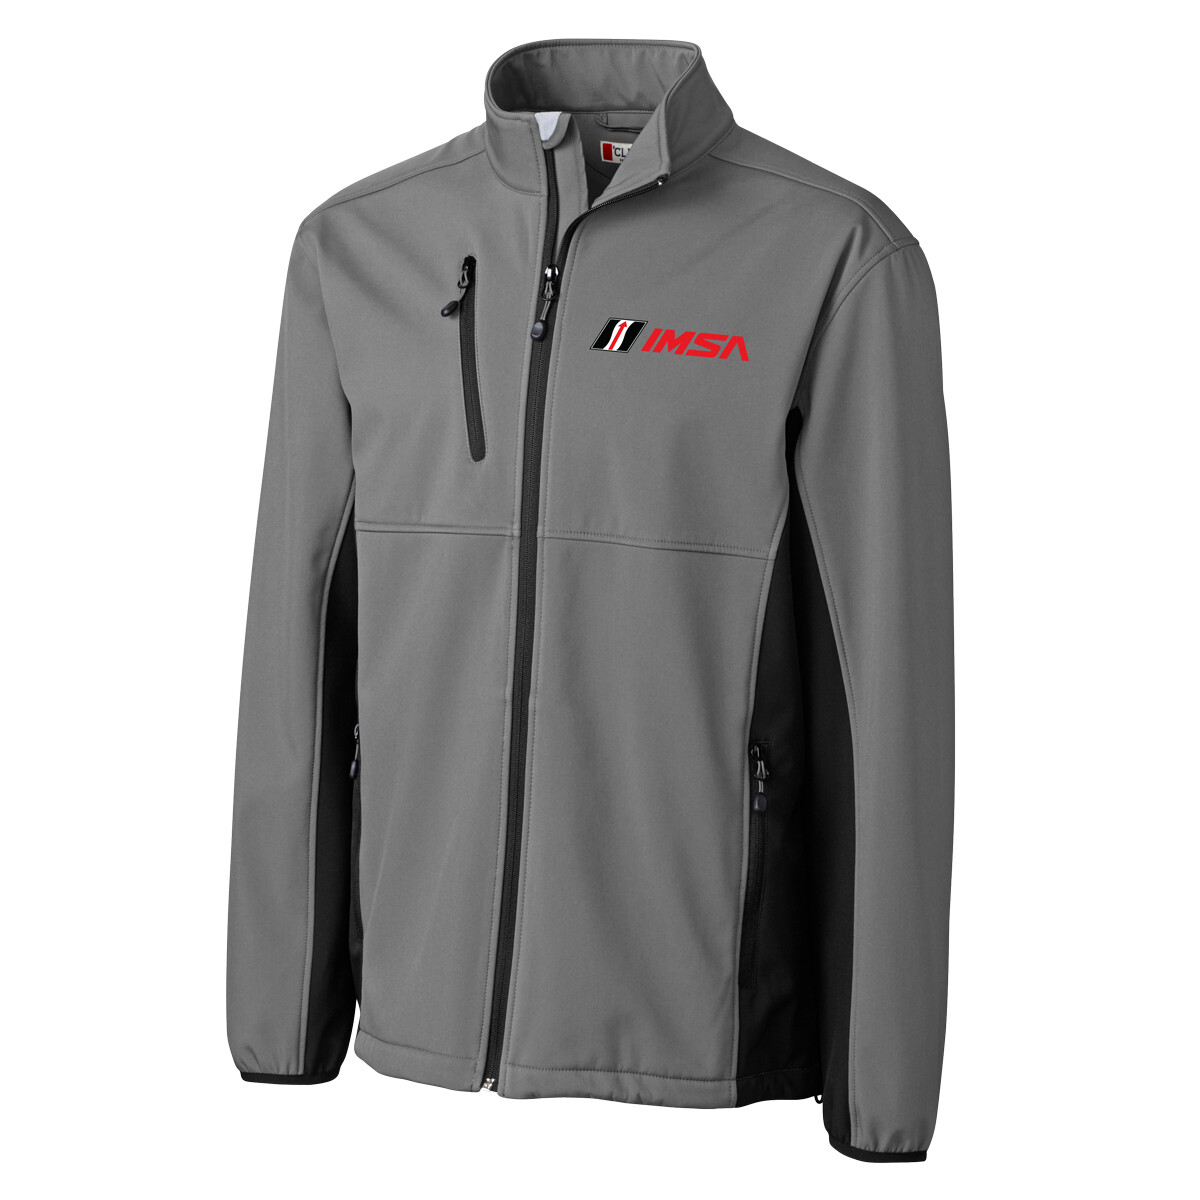 IMSA Narvik Softshell Cutter & Buck Jacket - Grey/Black